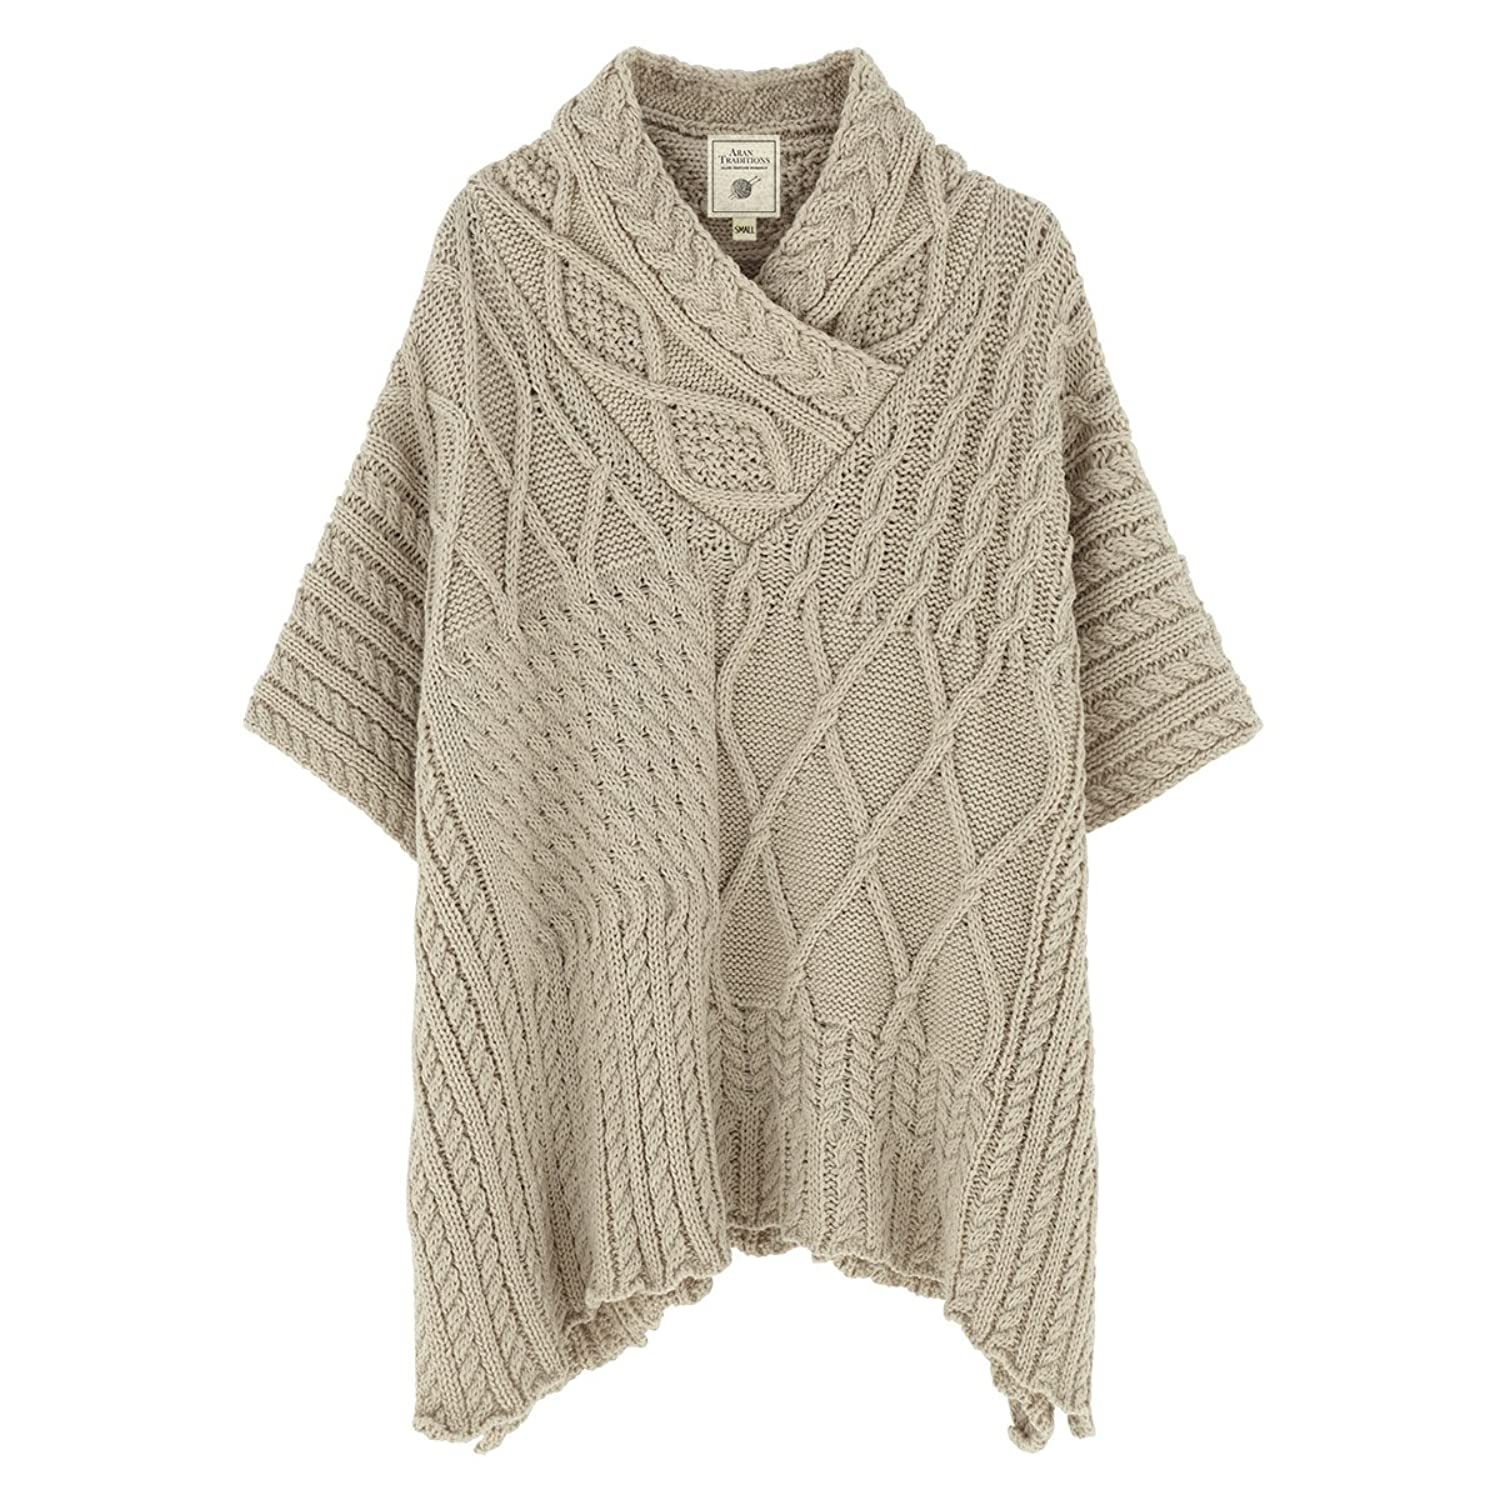 Aran Traditions Oatmeal Neck Cape Shawl